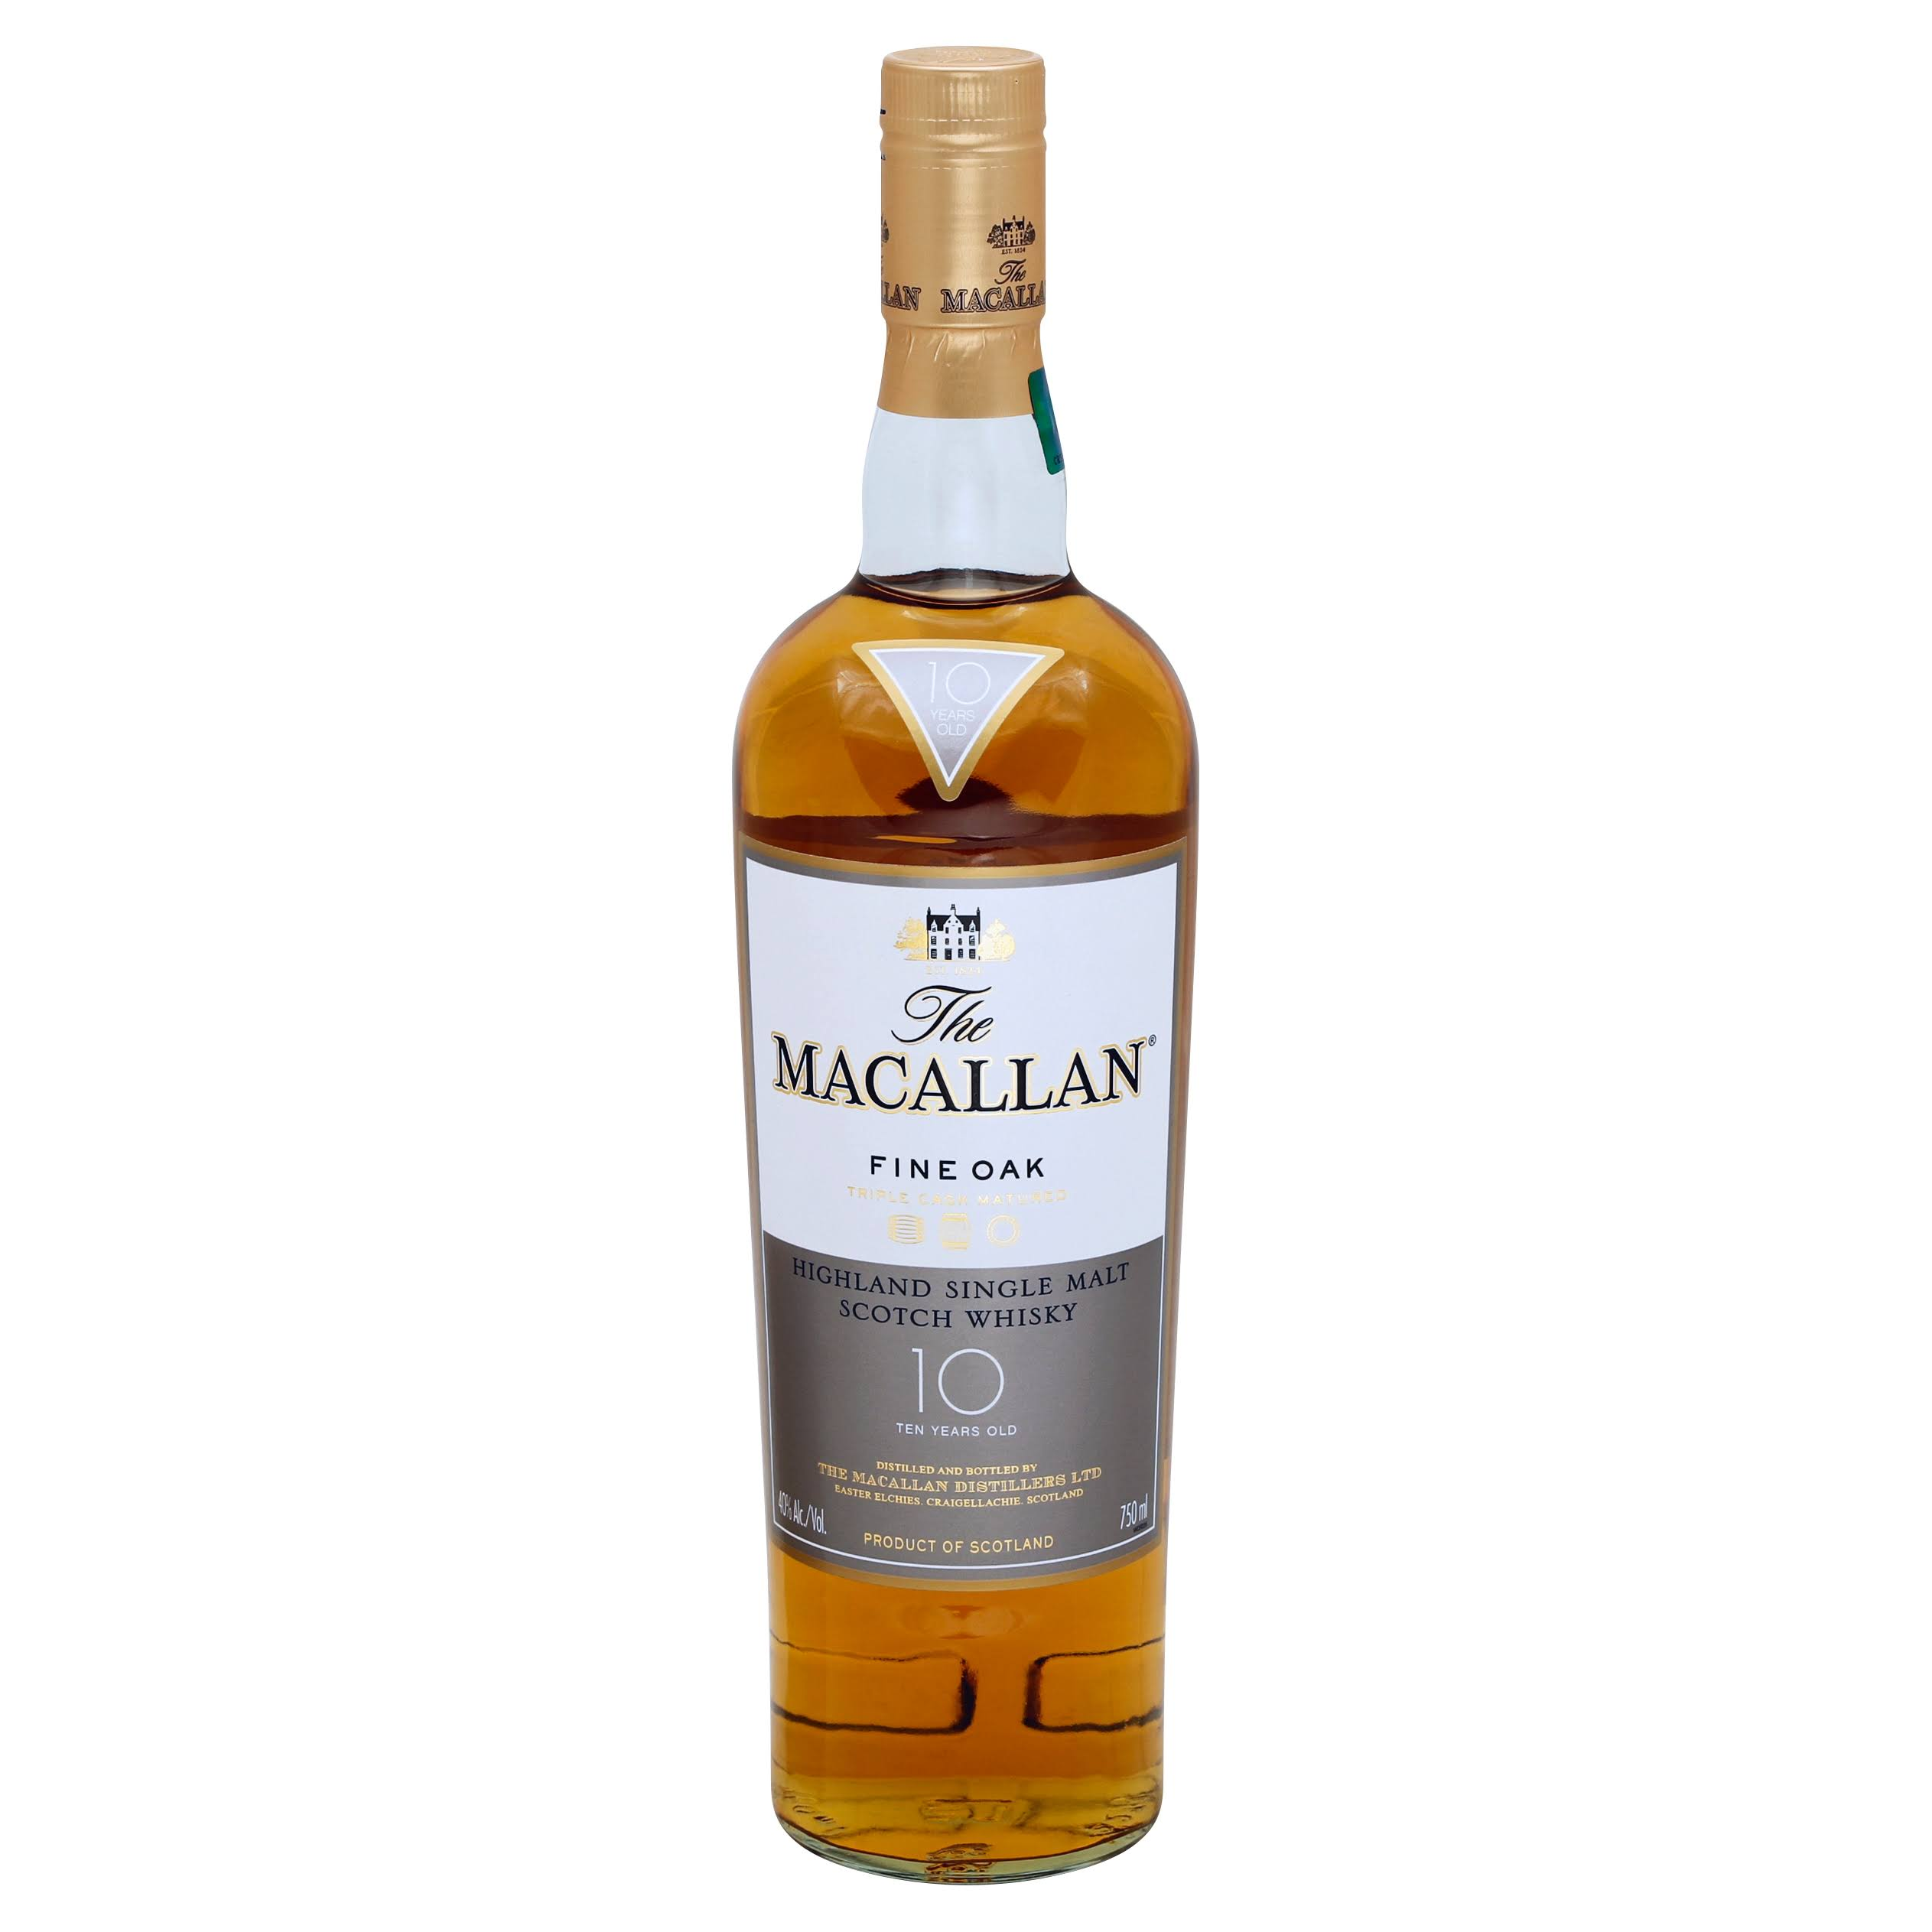 Macallan Fine Oak 10 Year Old Single Malt Scotch Whisky - 750 ml bottle